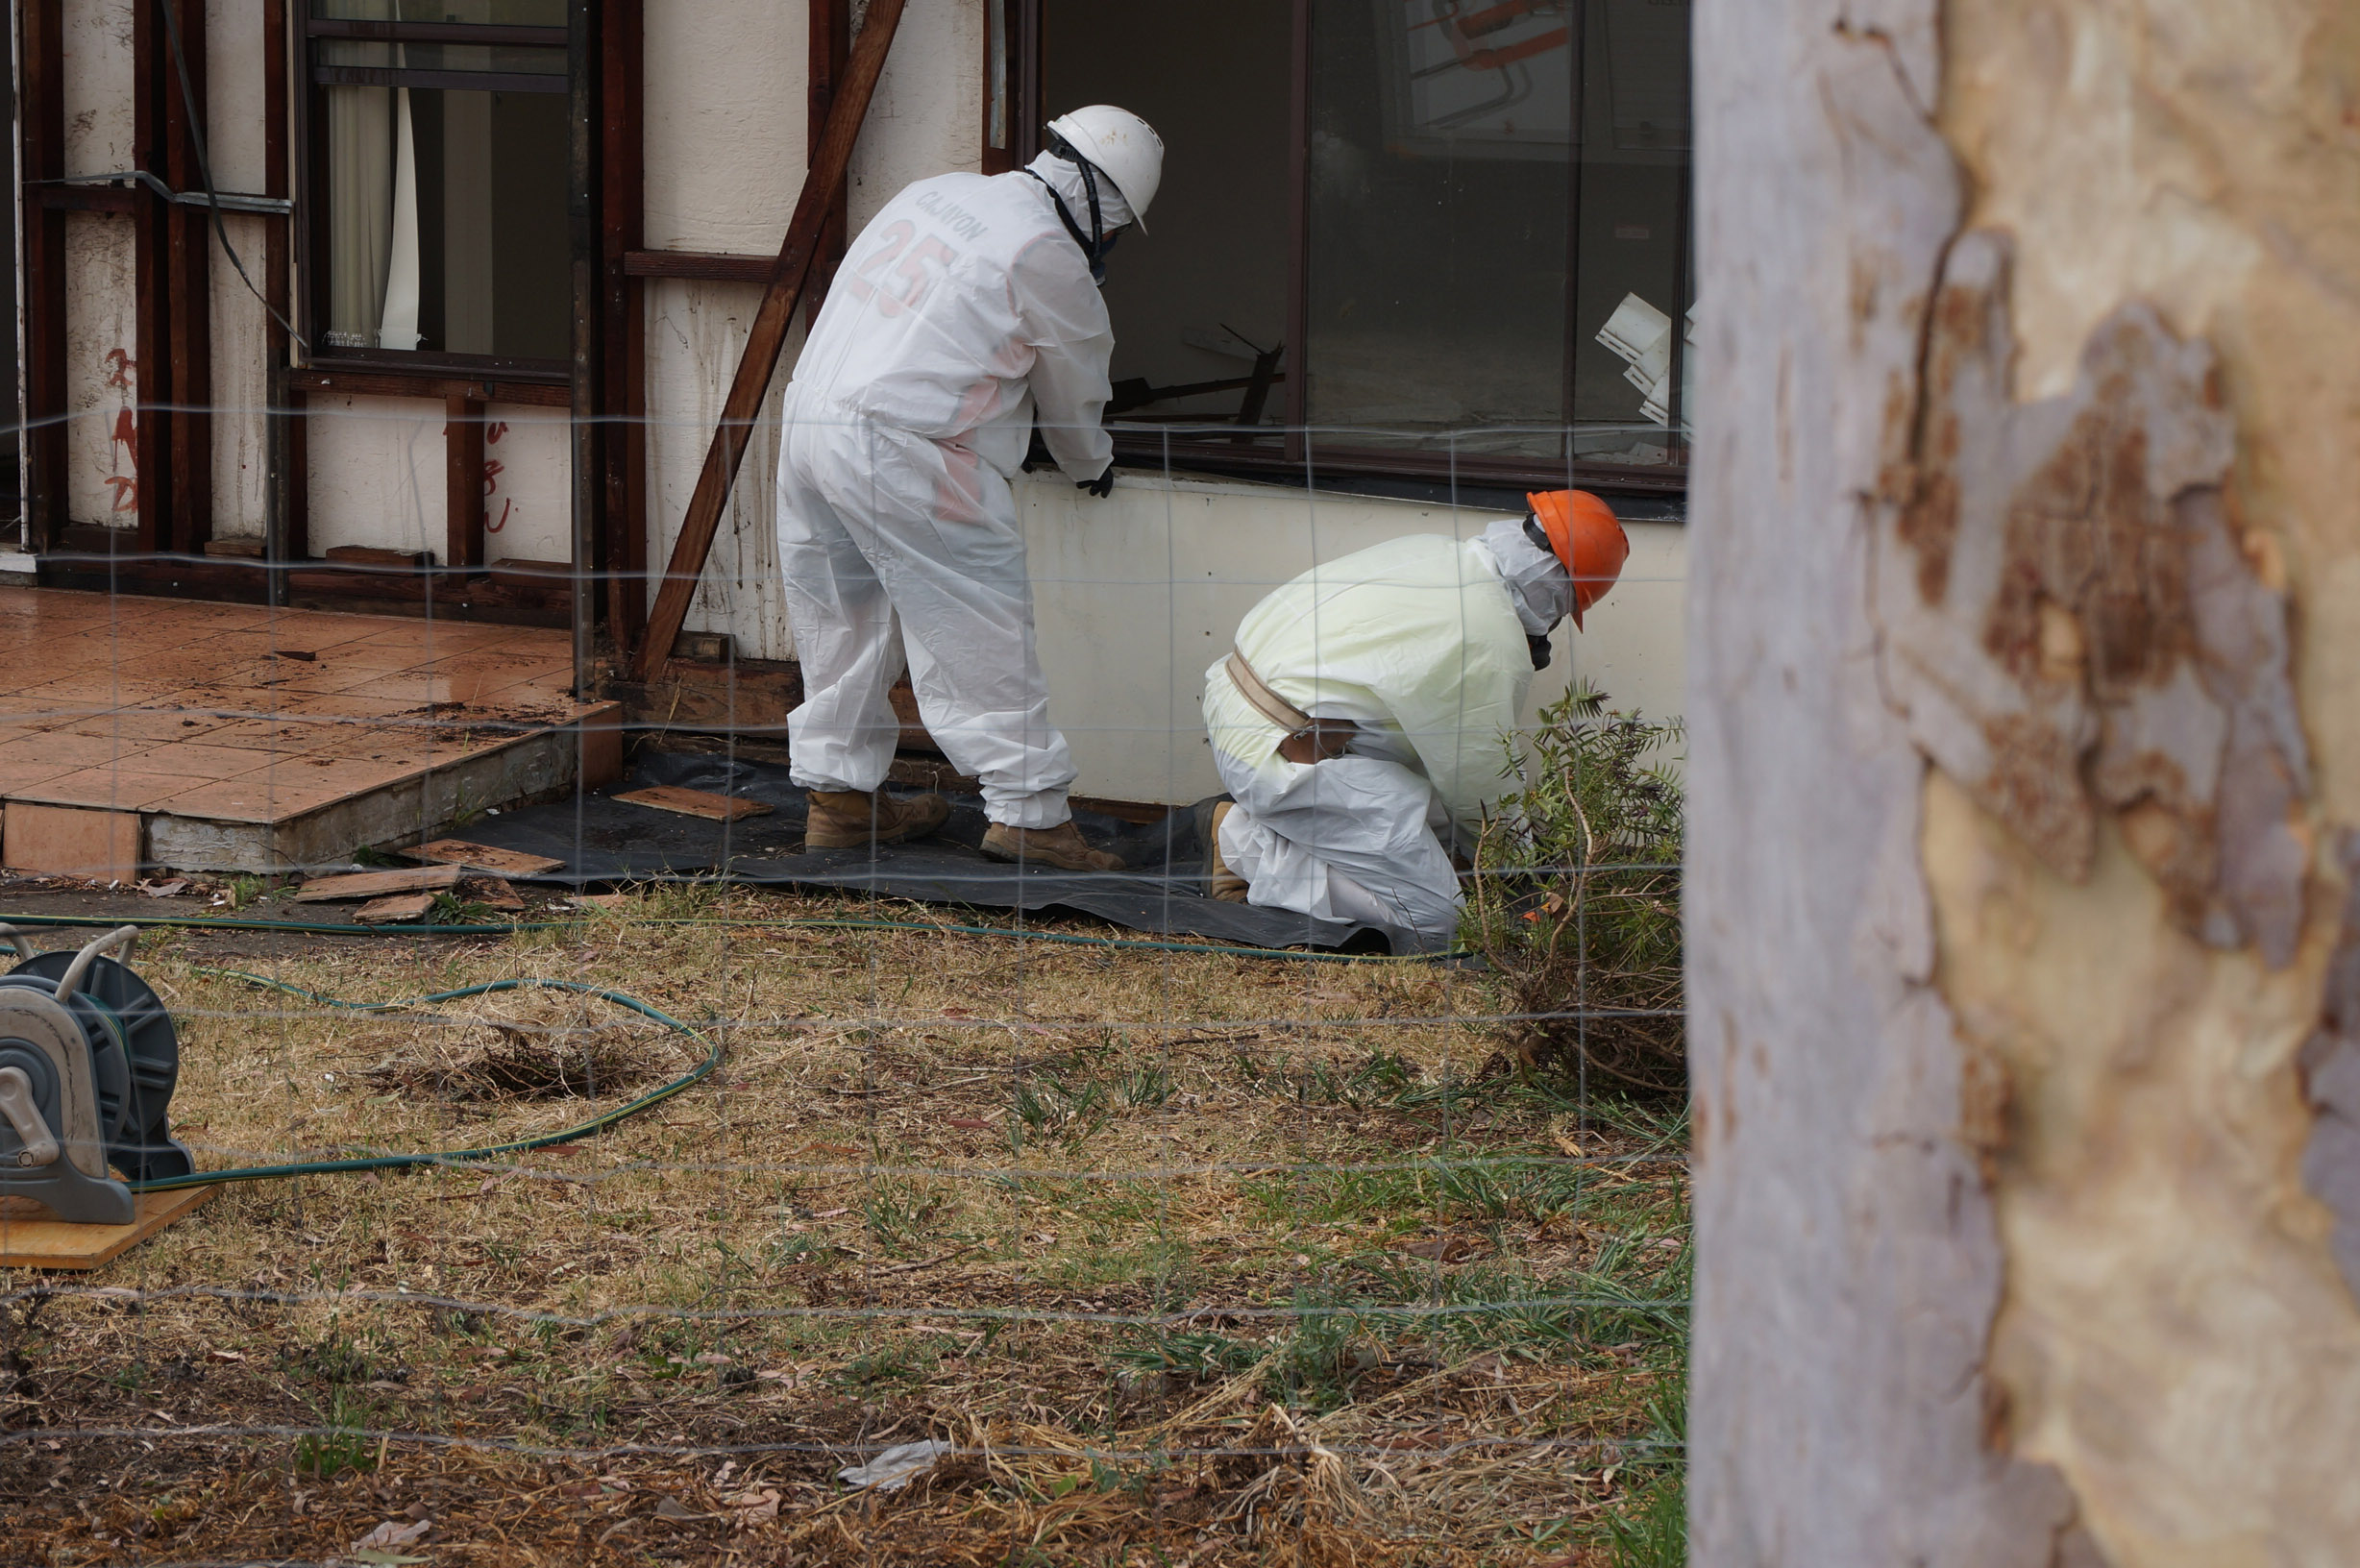 Our asbestos removal crew removing asbestos sheeting from a asbestos clad fibro home.